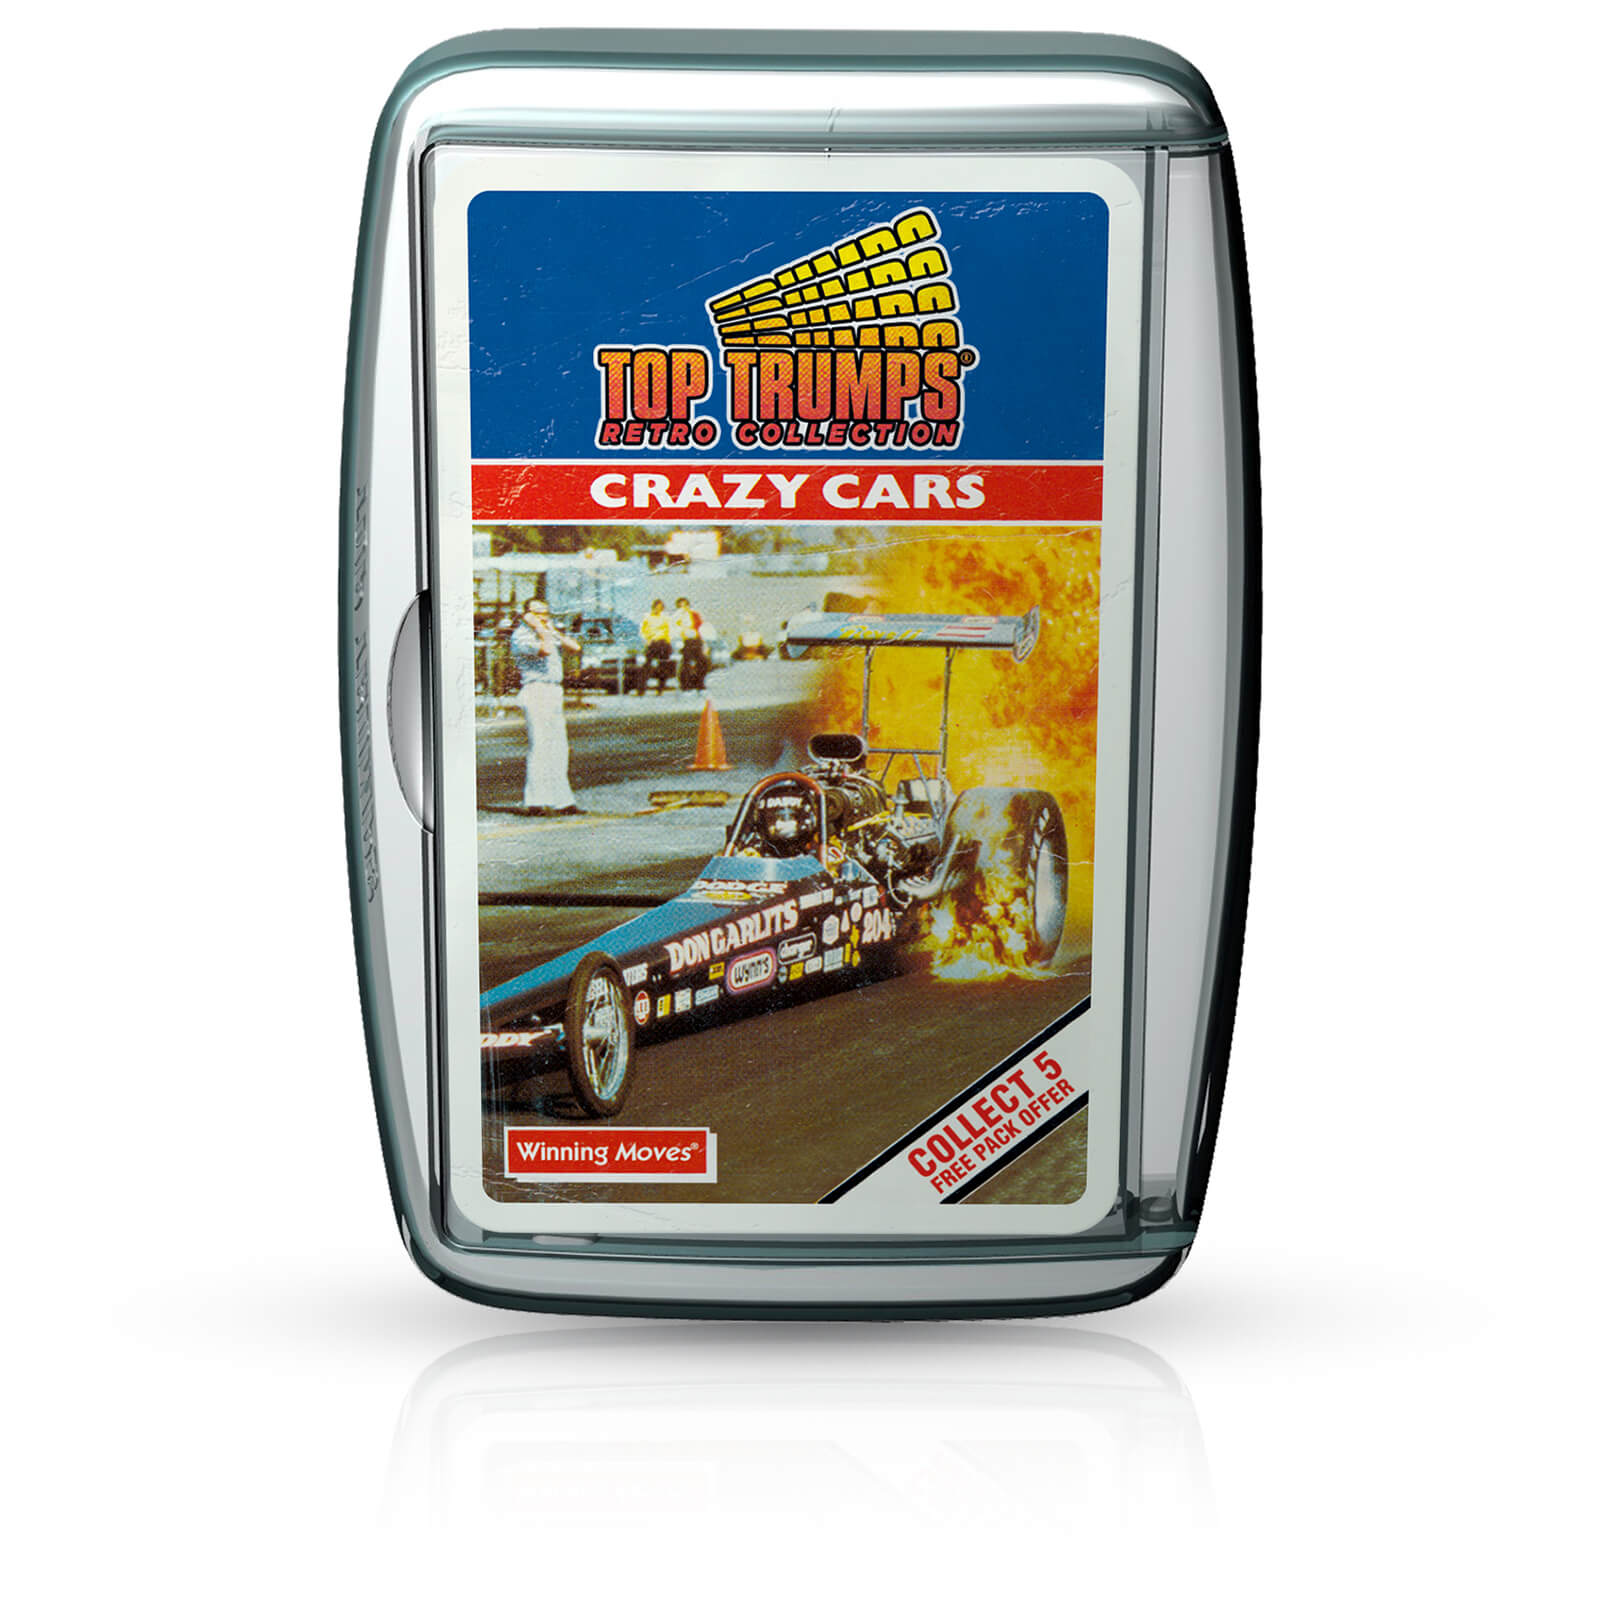 Image of Top Trumps Card Game - Crazy Cars Retro Edition